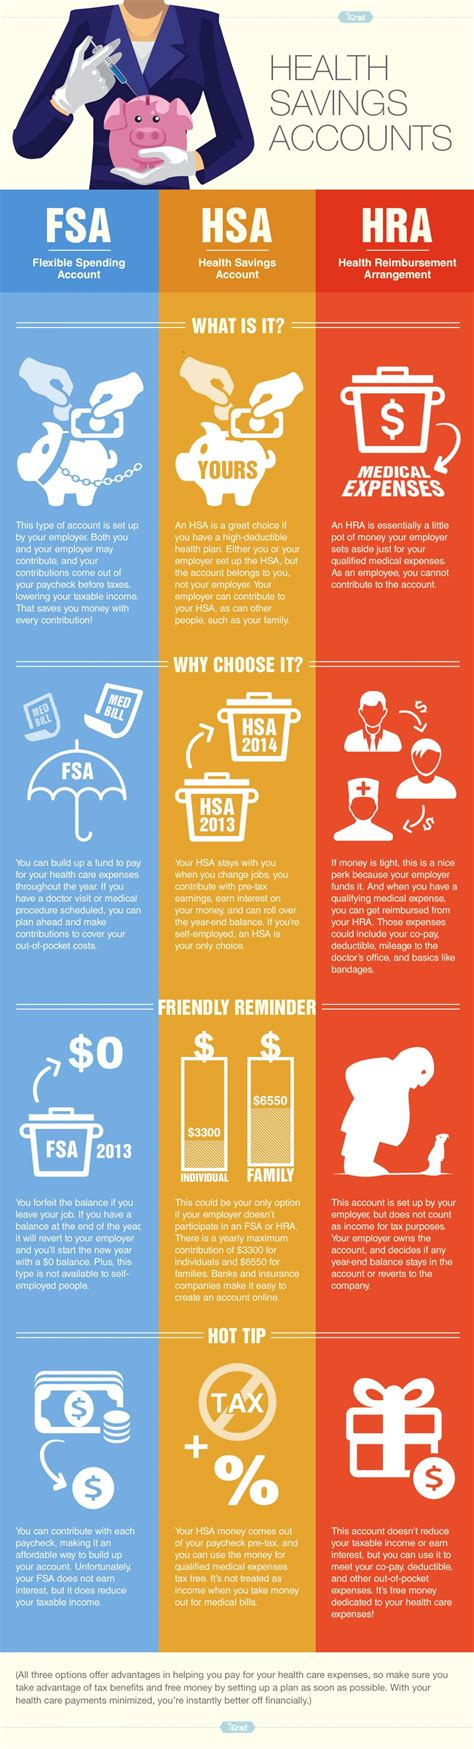 Graphic Design Works From Home health savings accounts infographic visualistan